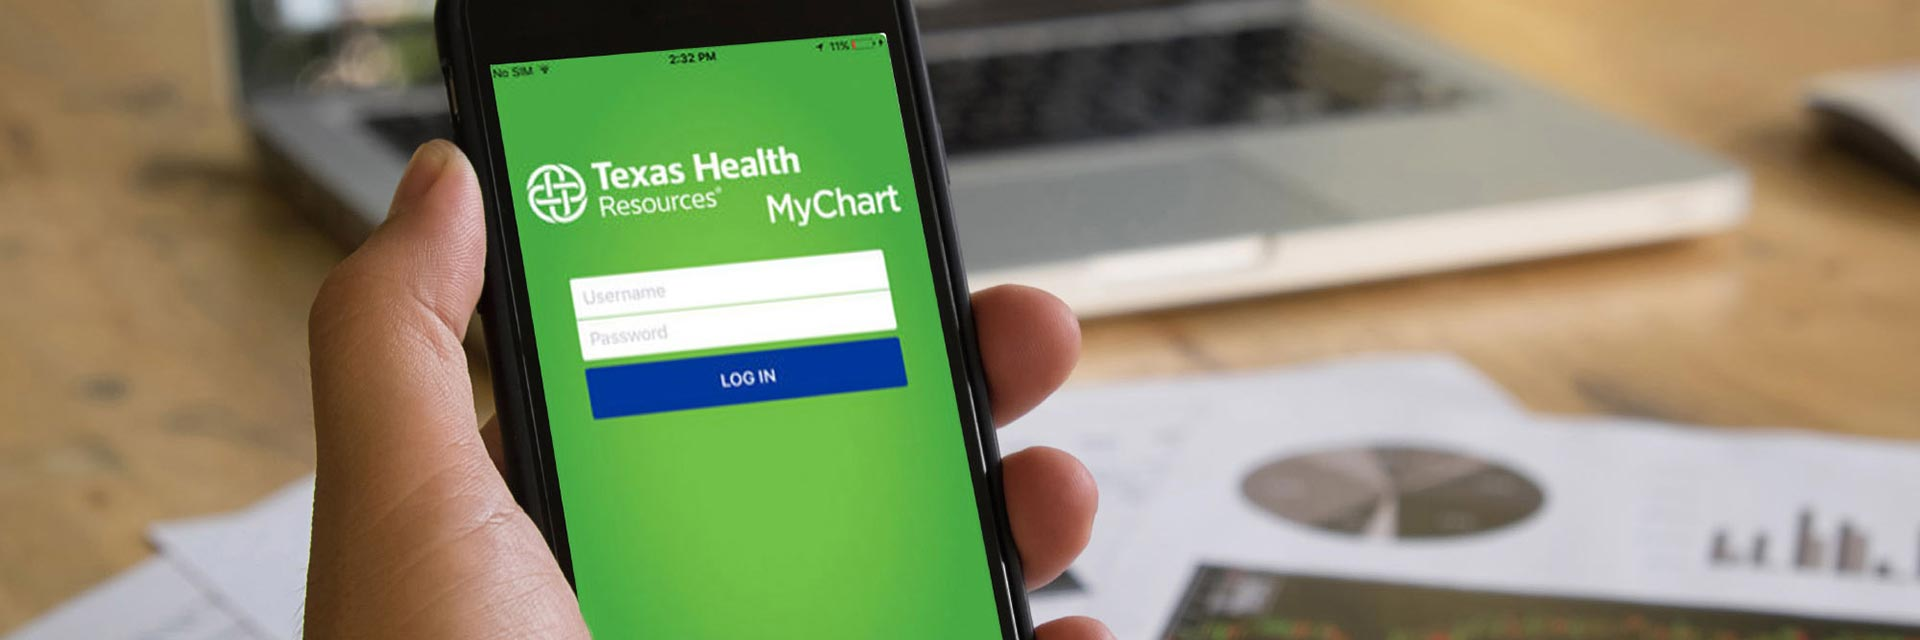 MyChart App on Cell Phone